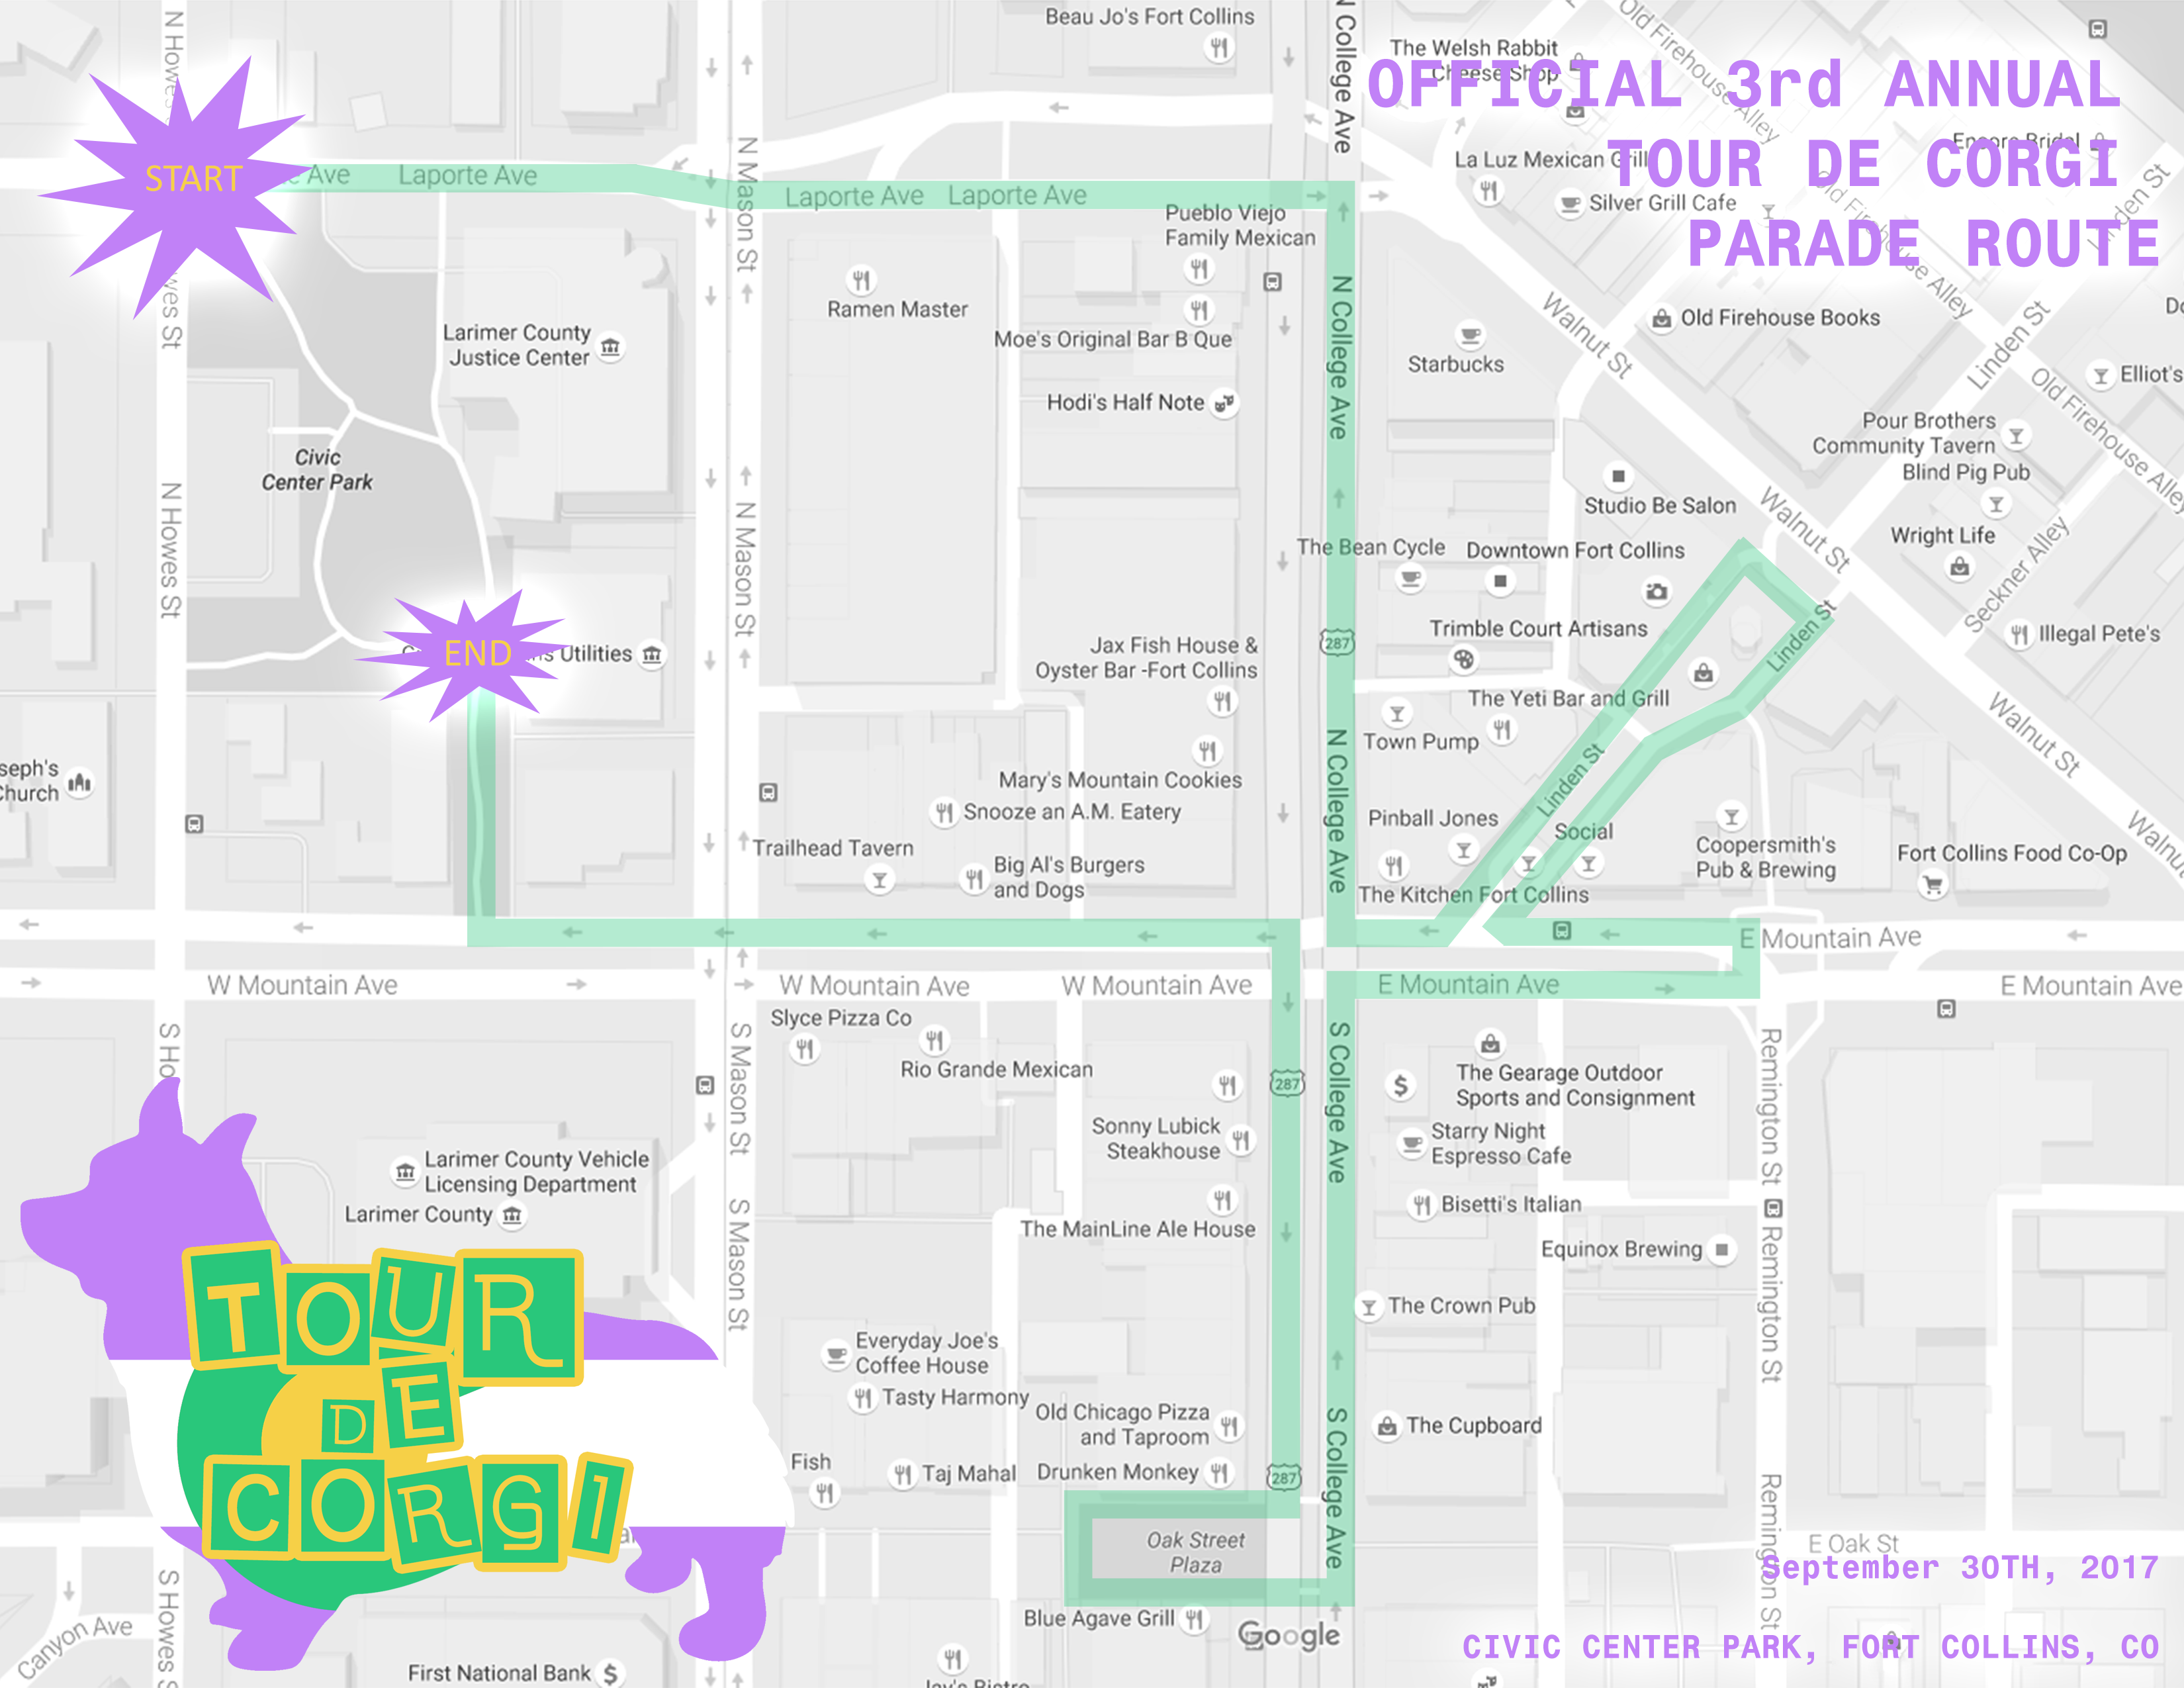 2017 Official TDC Parade Route